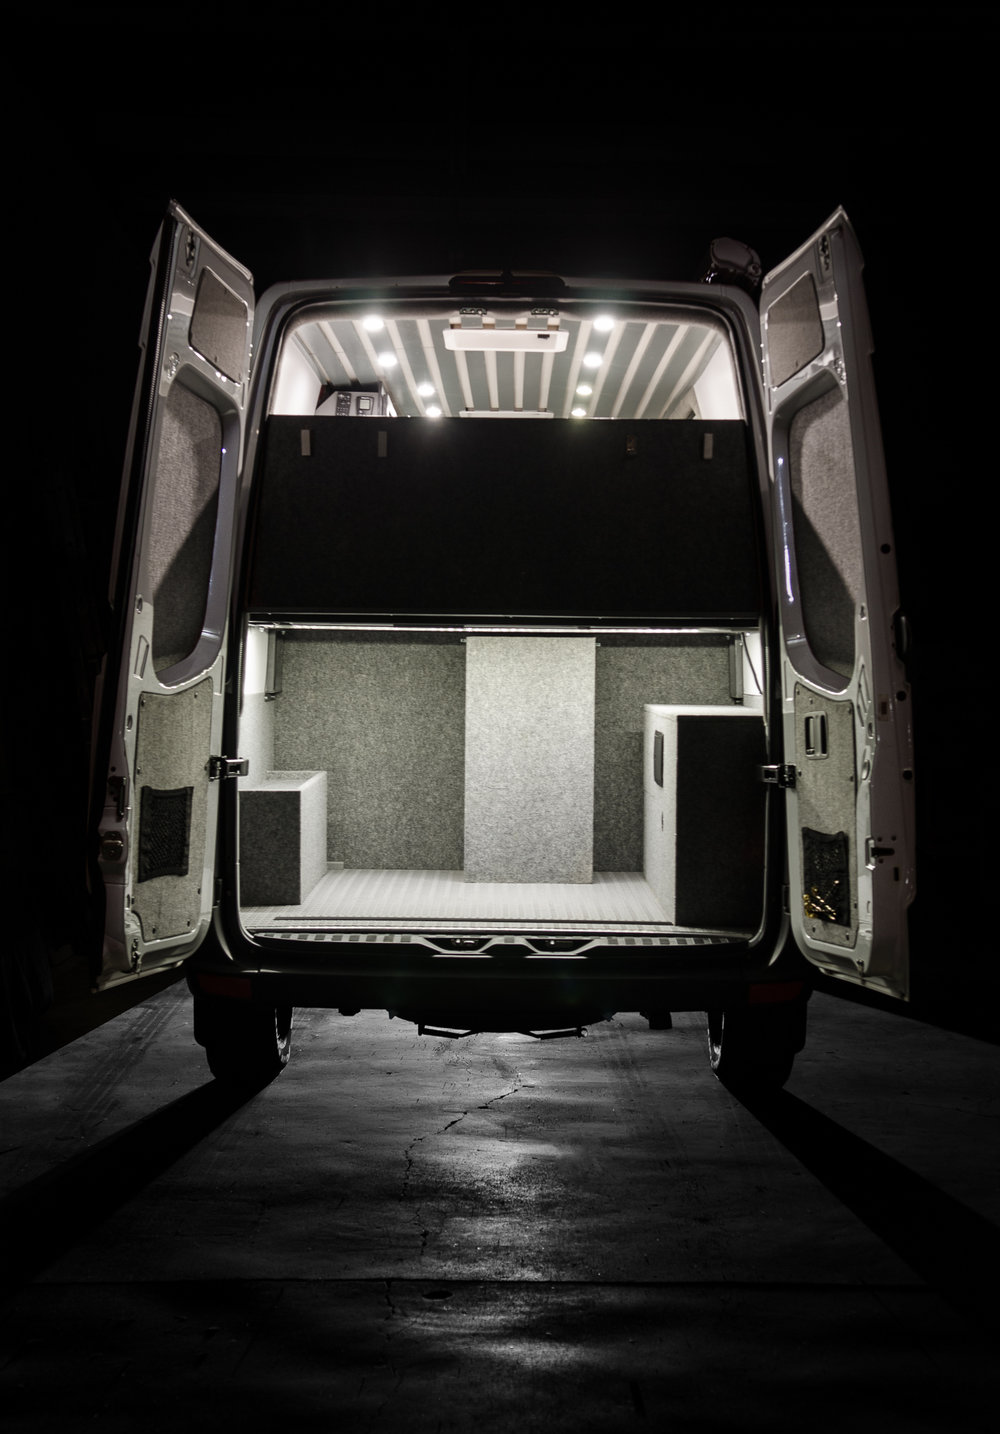 vanlife_moran_sprinter144_small-2.jpg